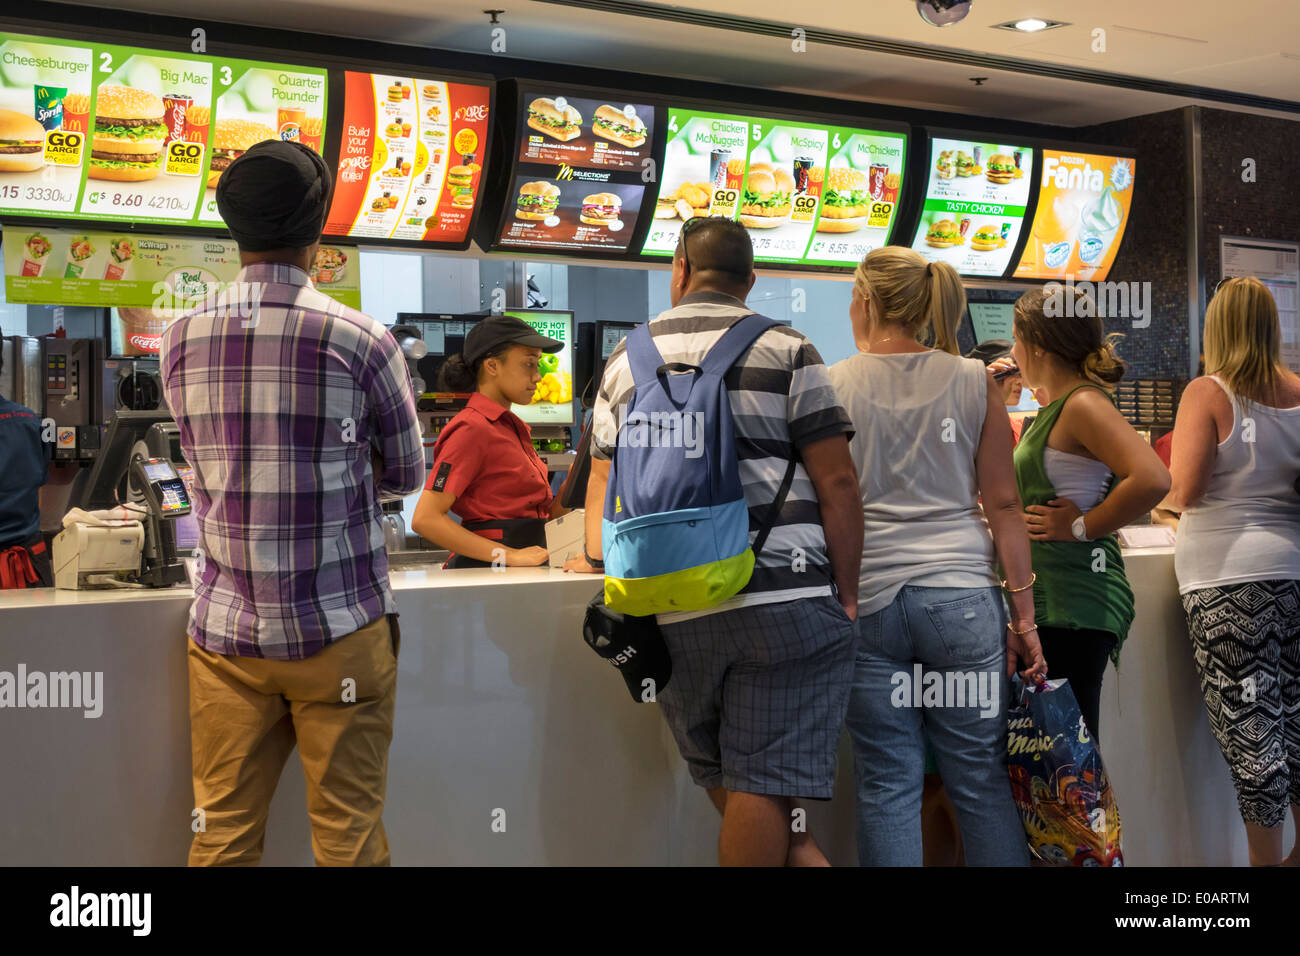 Sydney Australia NSW New South Wales CBD Central Business District Circular Quay McDonald's restaurant fast food counter ordering Black woman teen gir - Stock Image